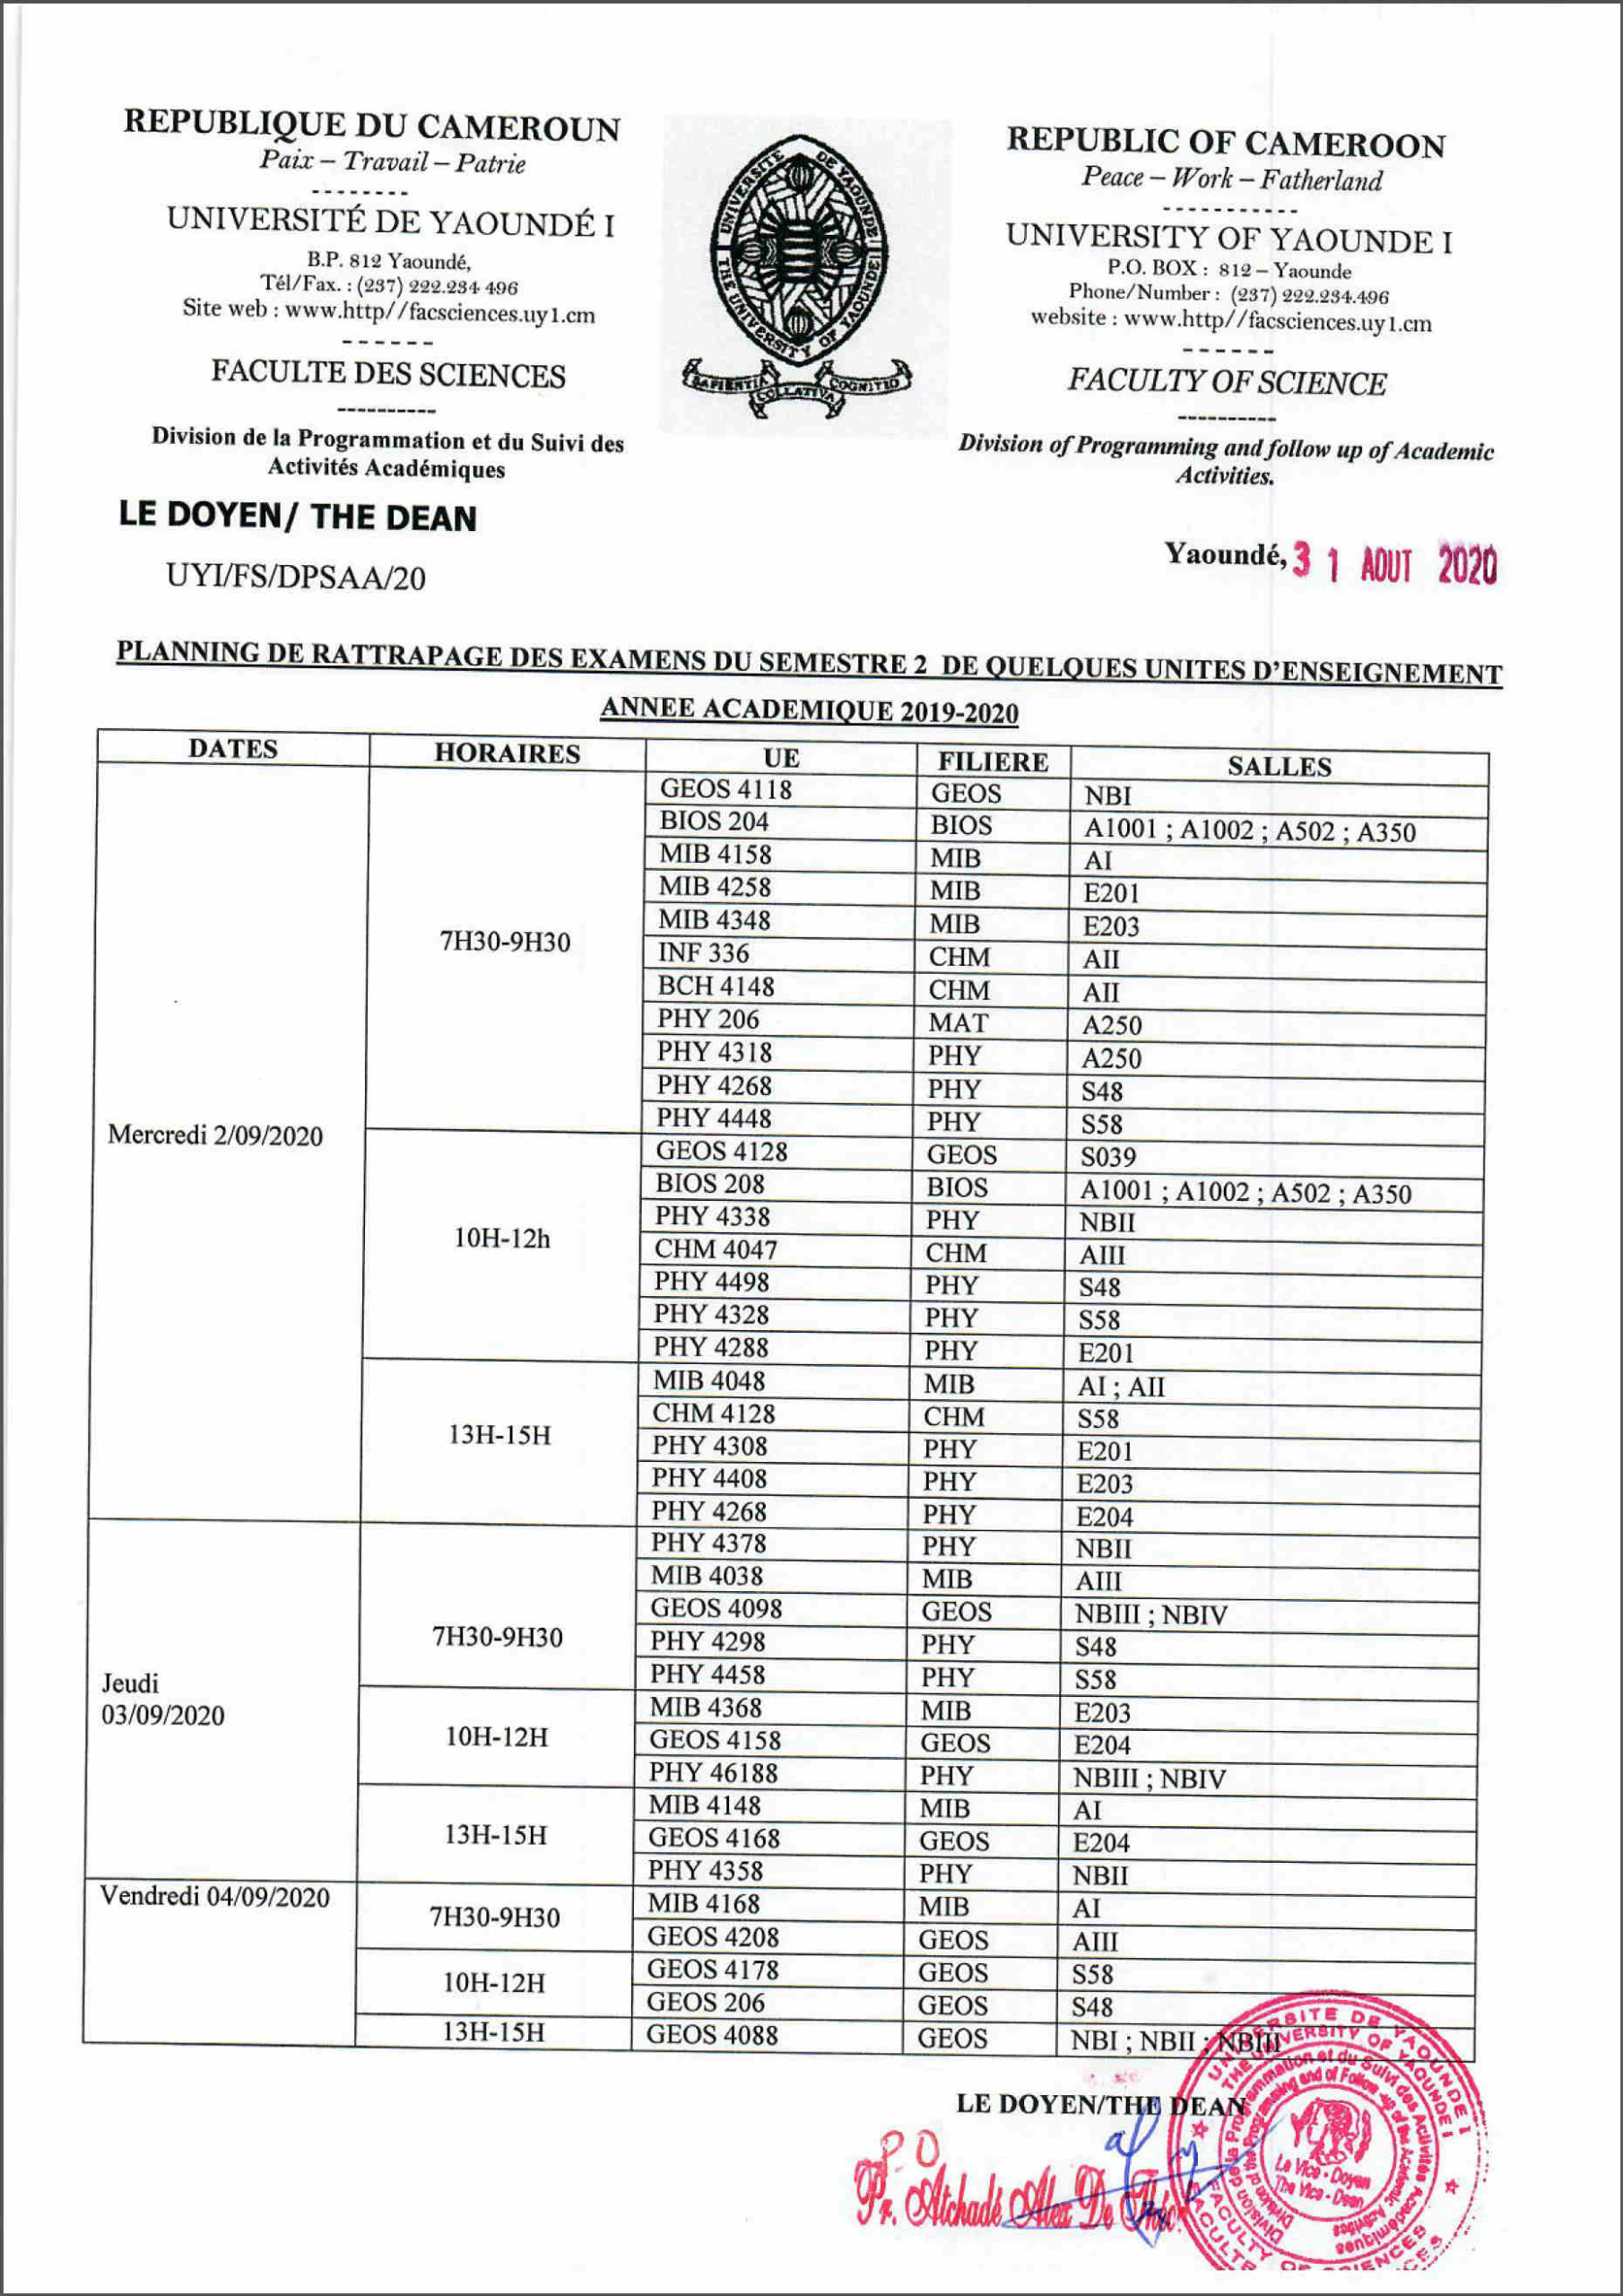 TAKE-UP SCHEDULE FOR SEMESTER 2 L2 EXAMS of some EU 2019-2020